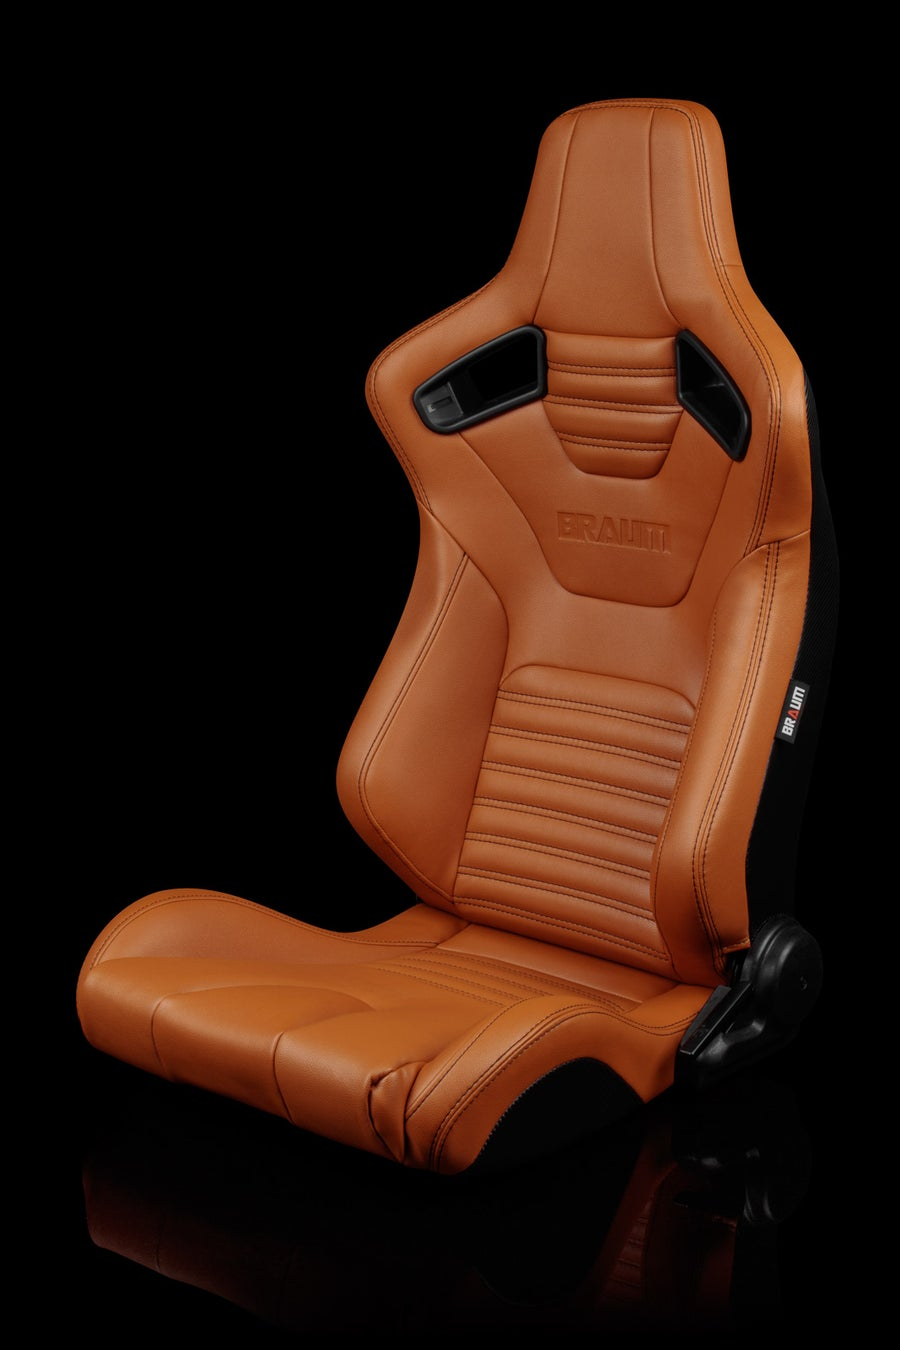 Image of Elite X Series VER. 2 - BRAUM Racing Seats (Pair) Colored